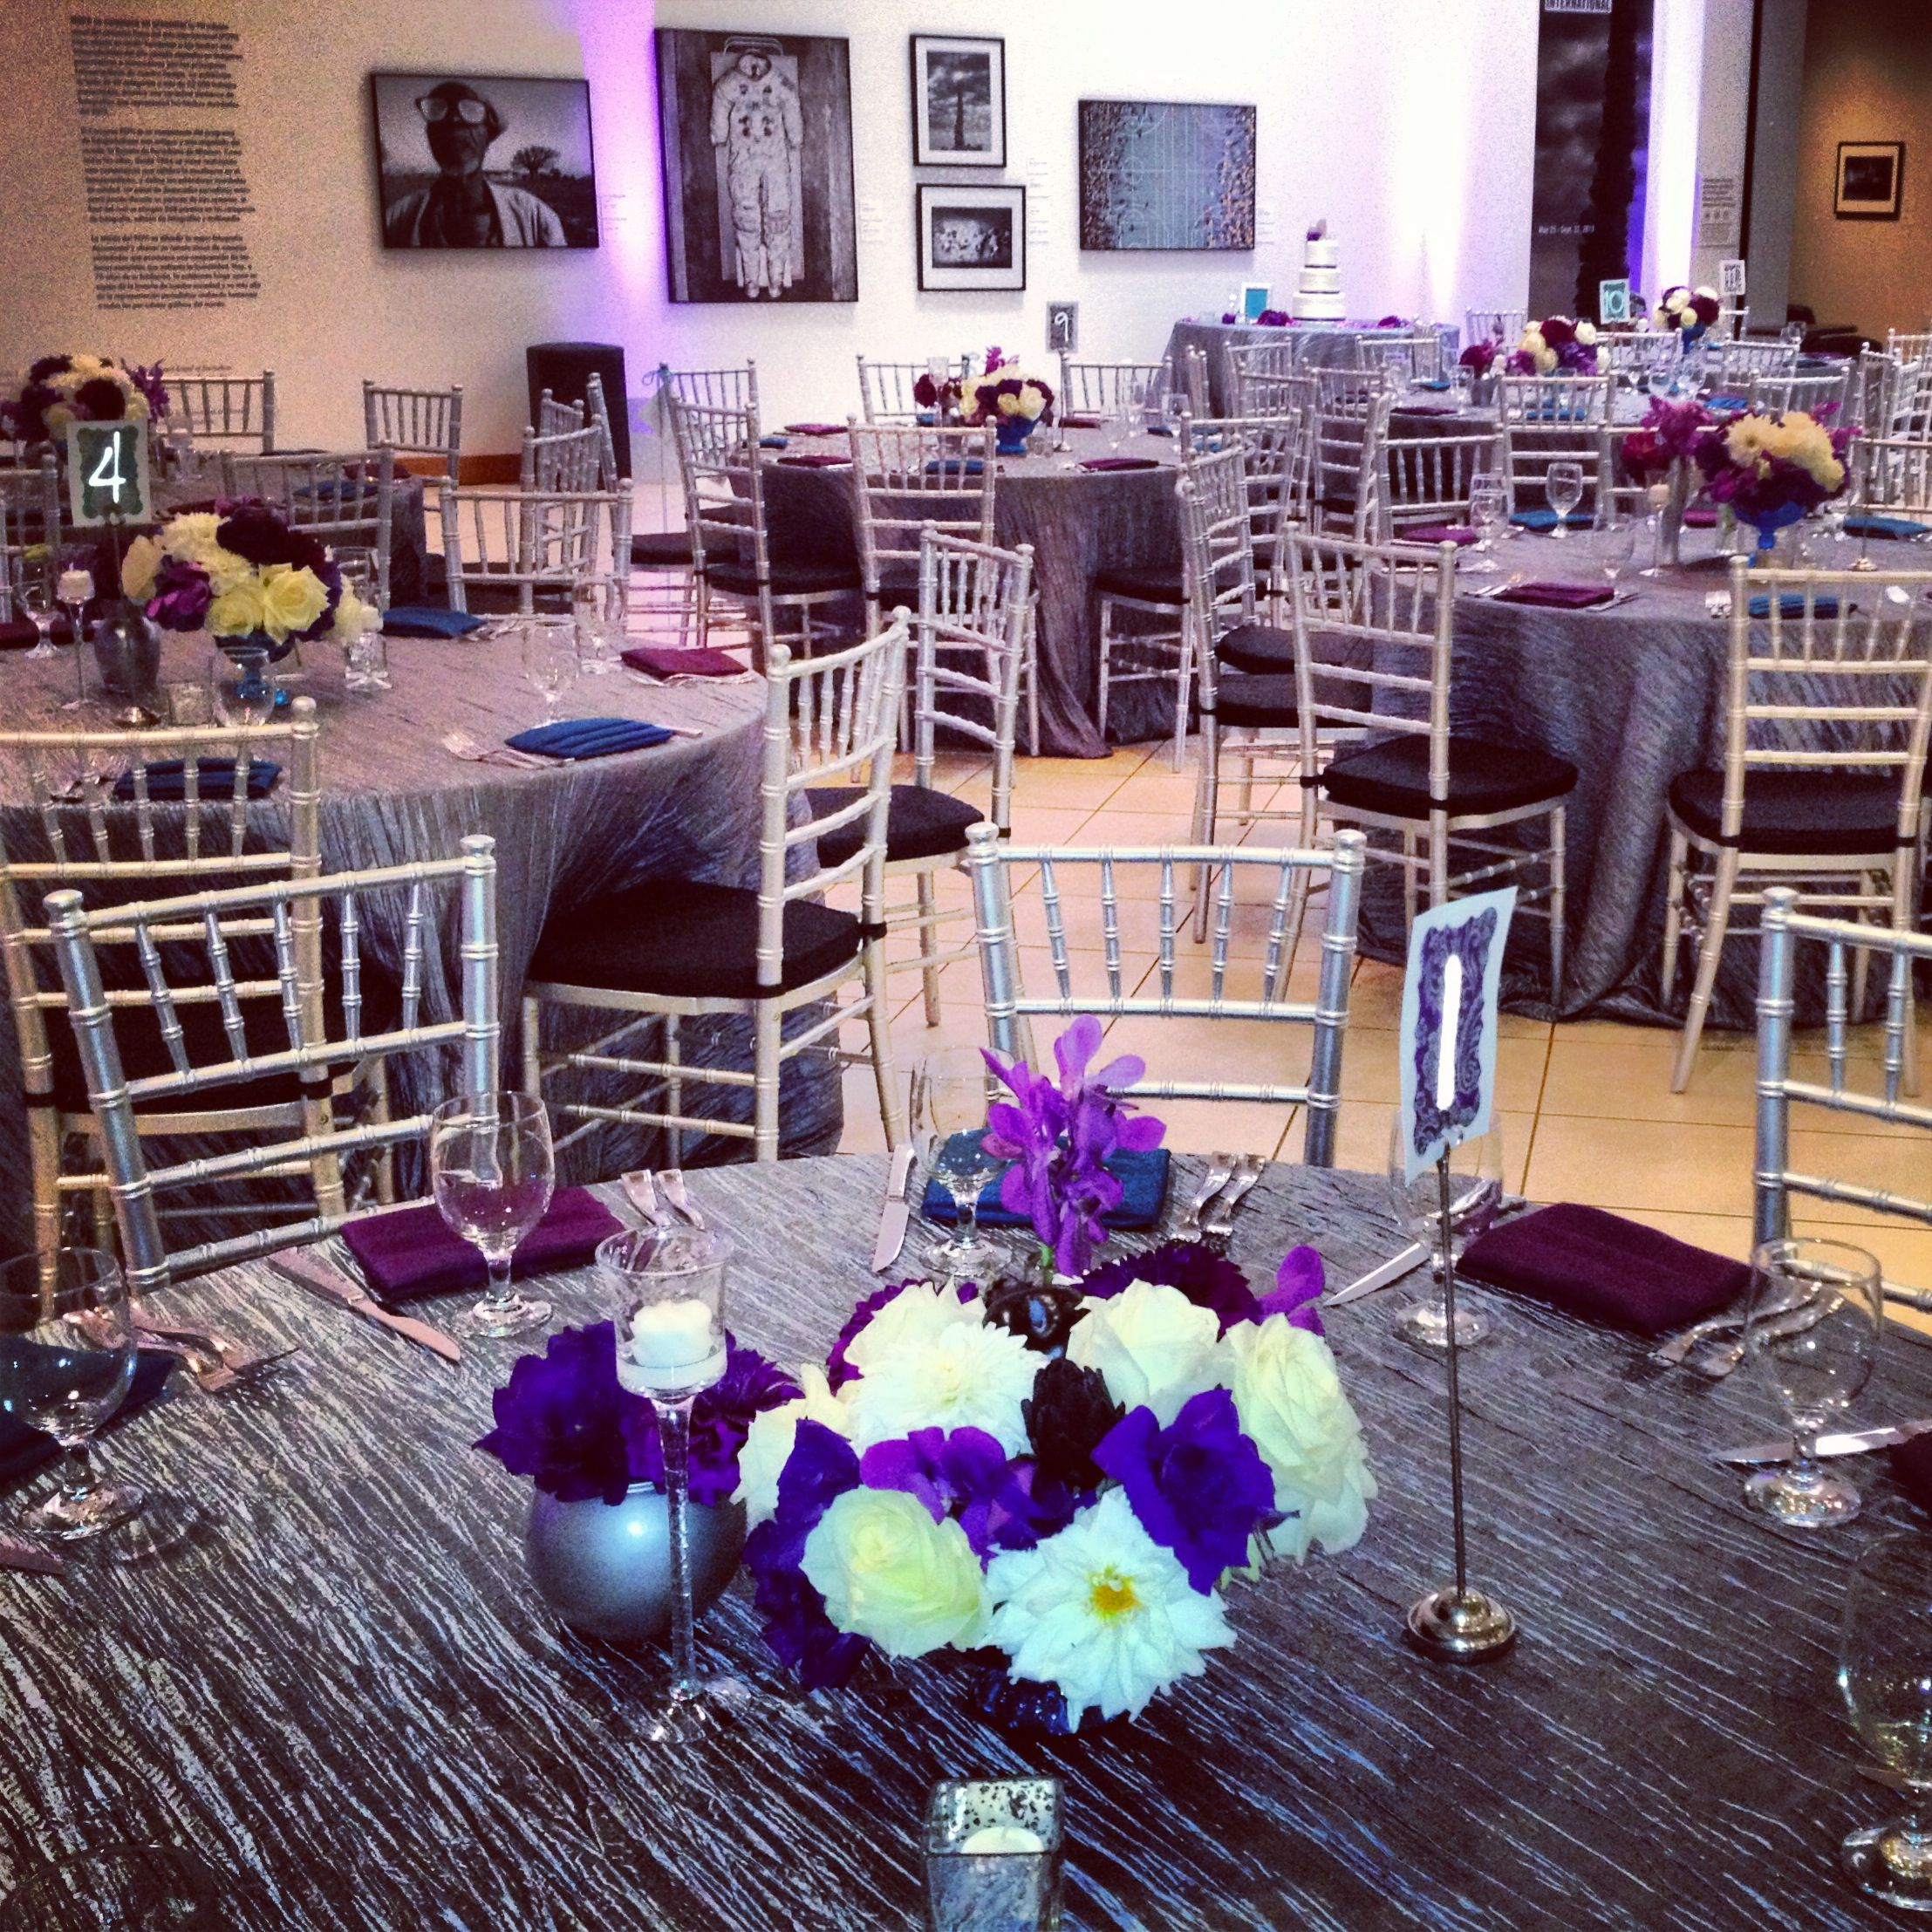 Teal Wedding Ideas For Reception: Silver, Purple And Teal Wedding Reception Decor